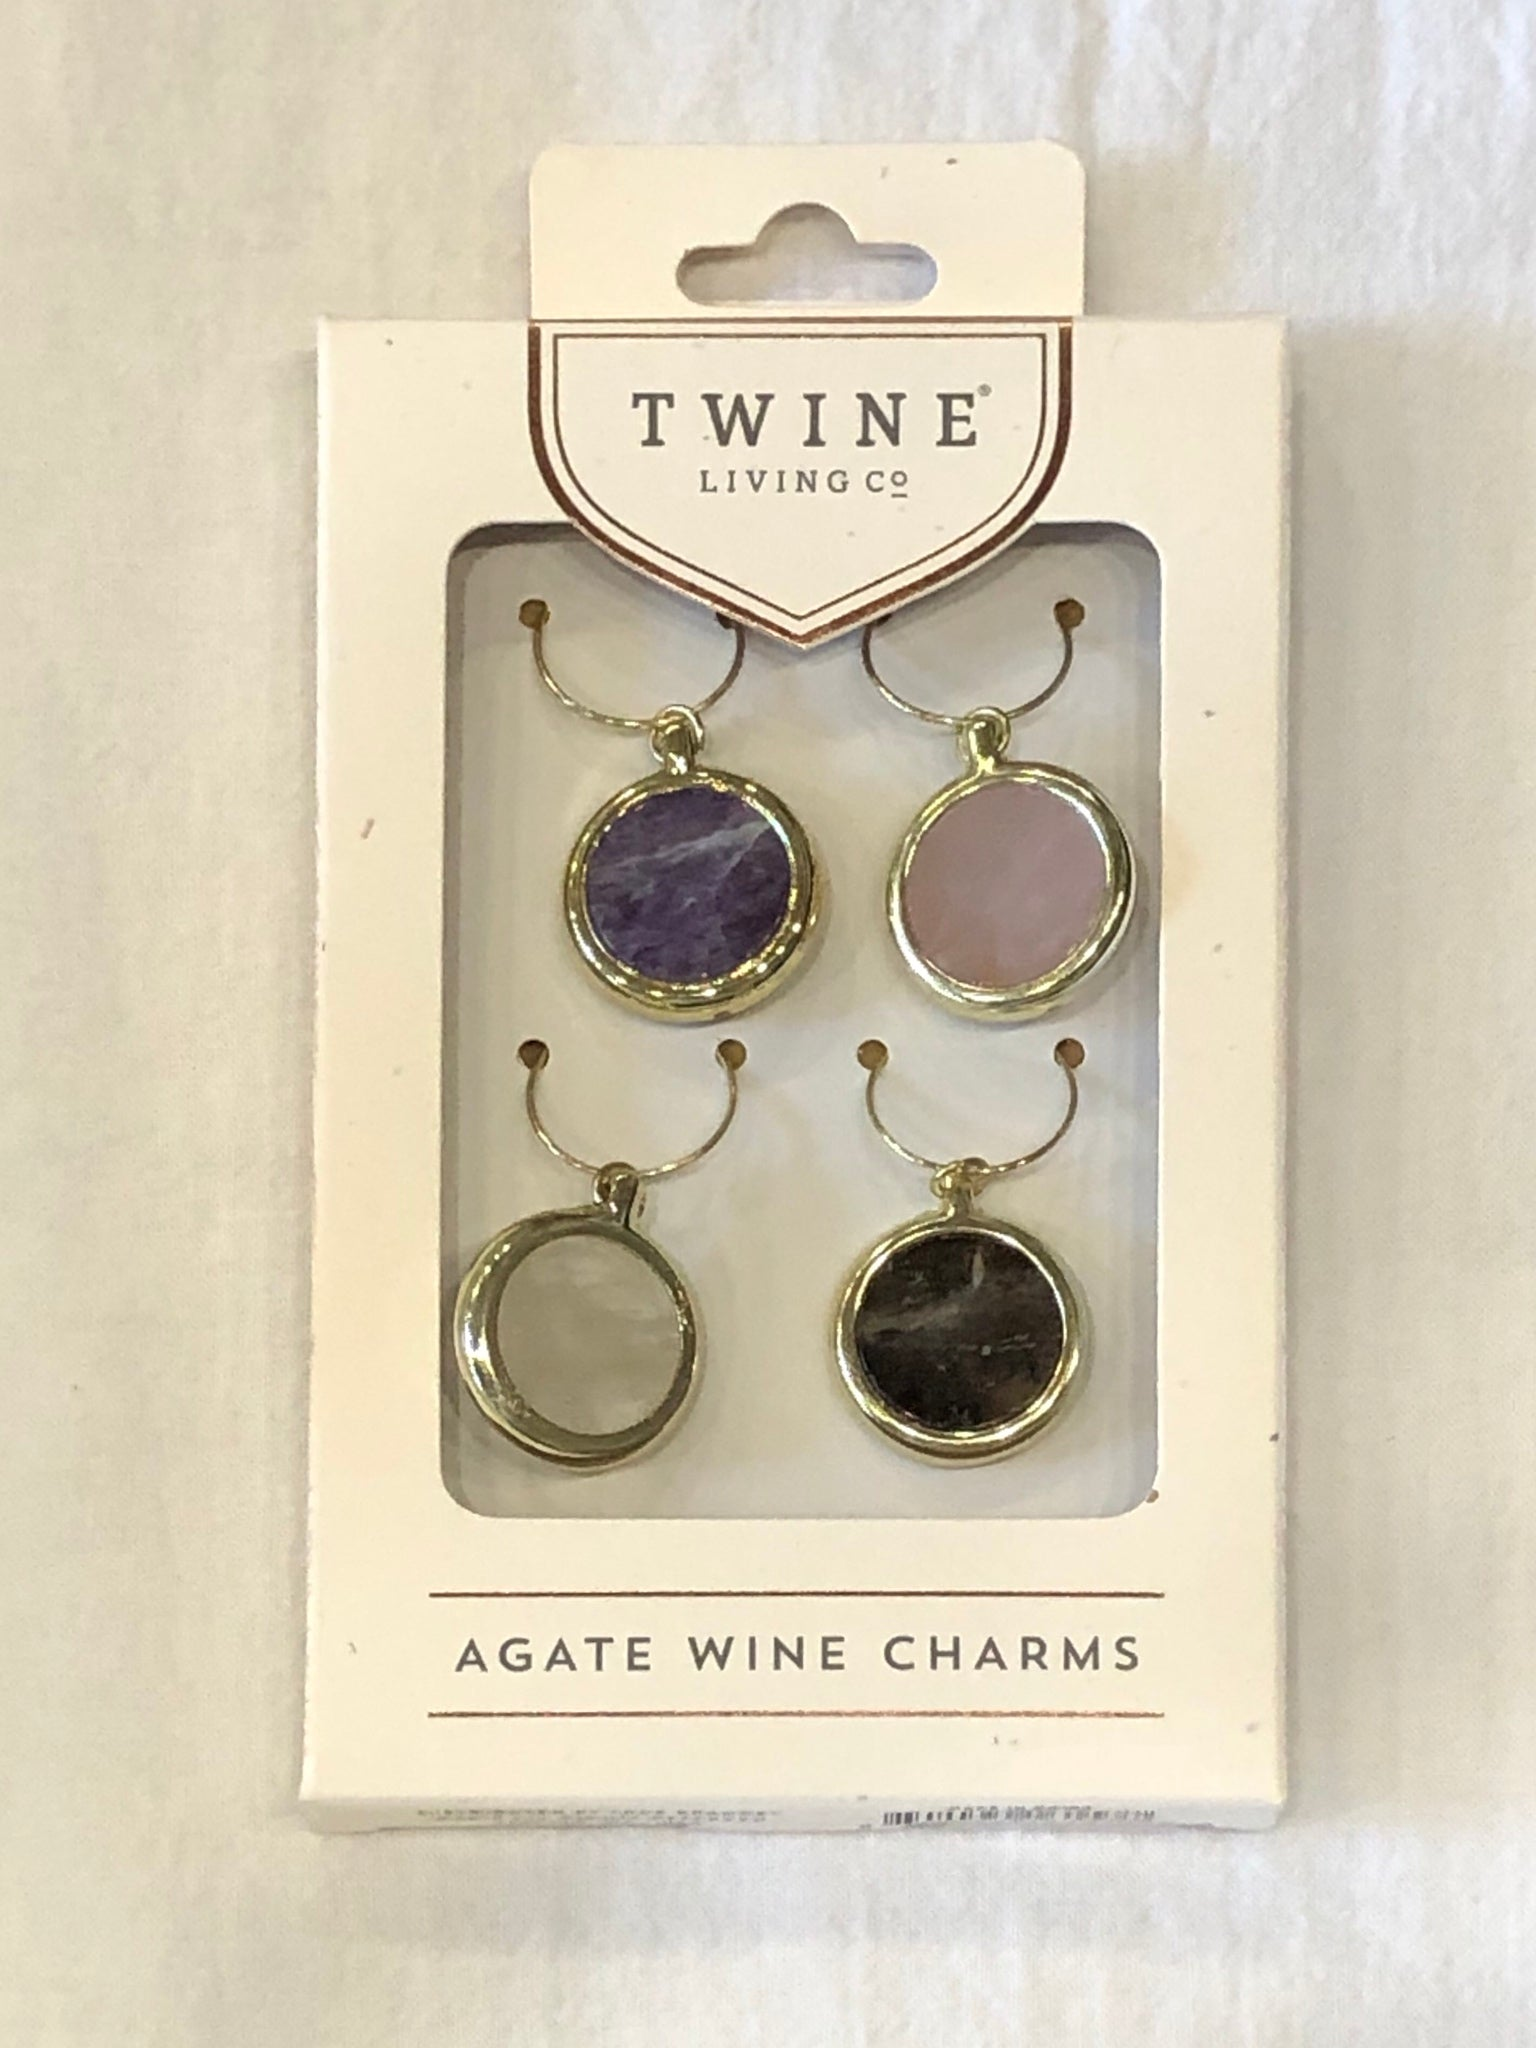 Agate Wine Charm Set by Twine